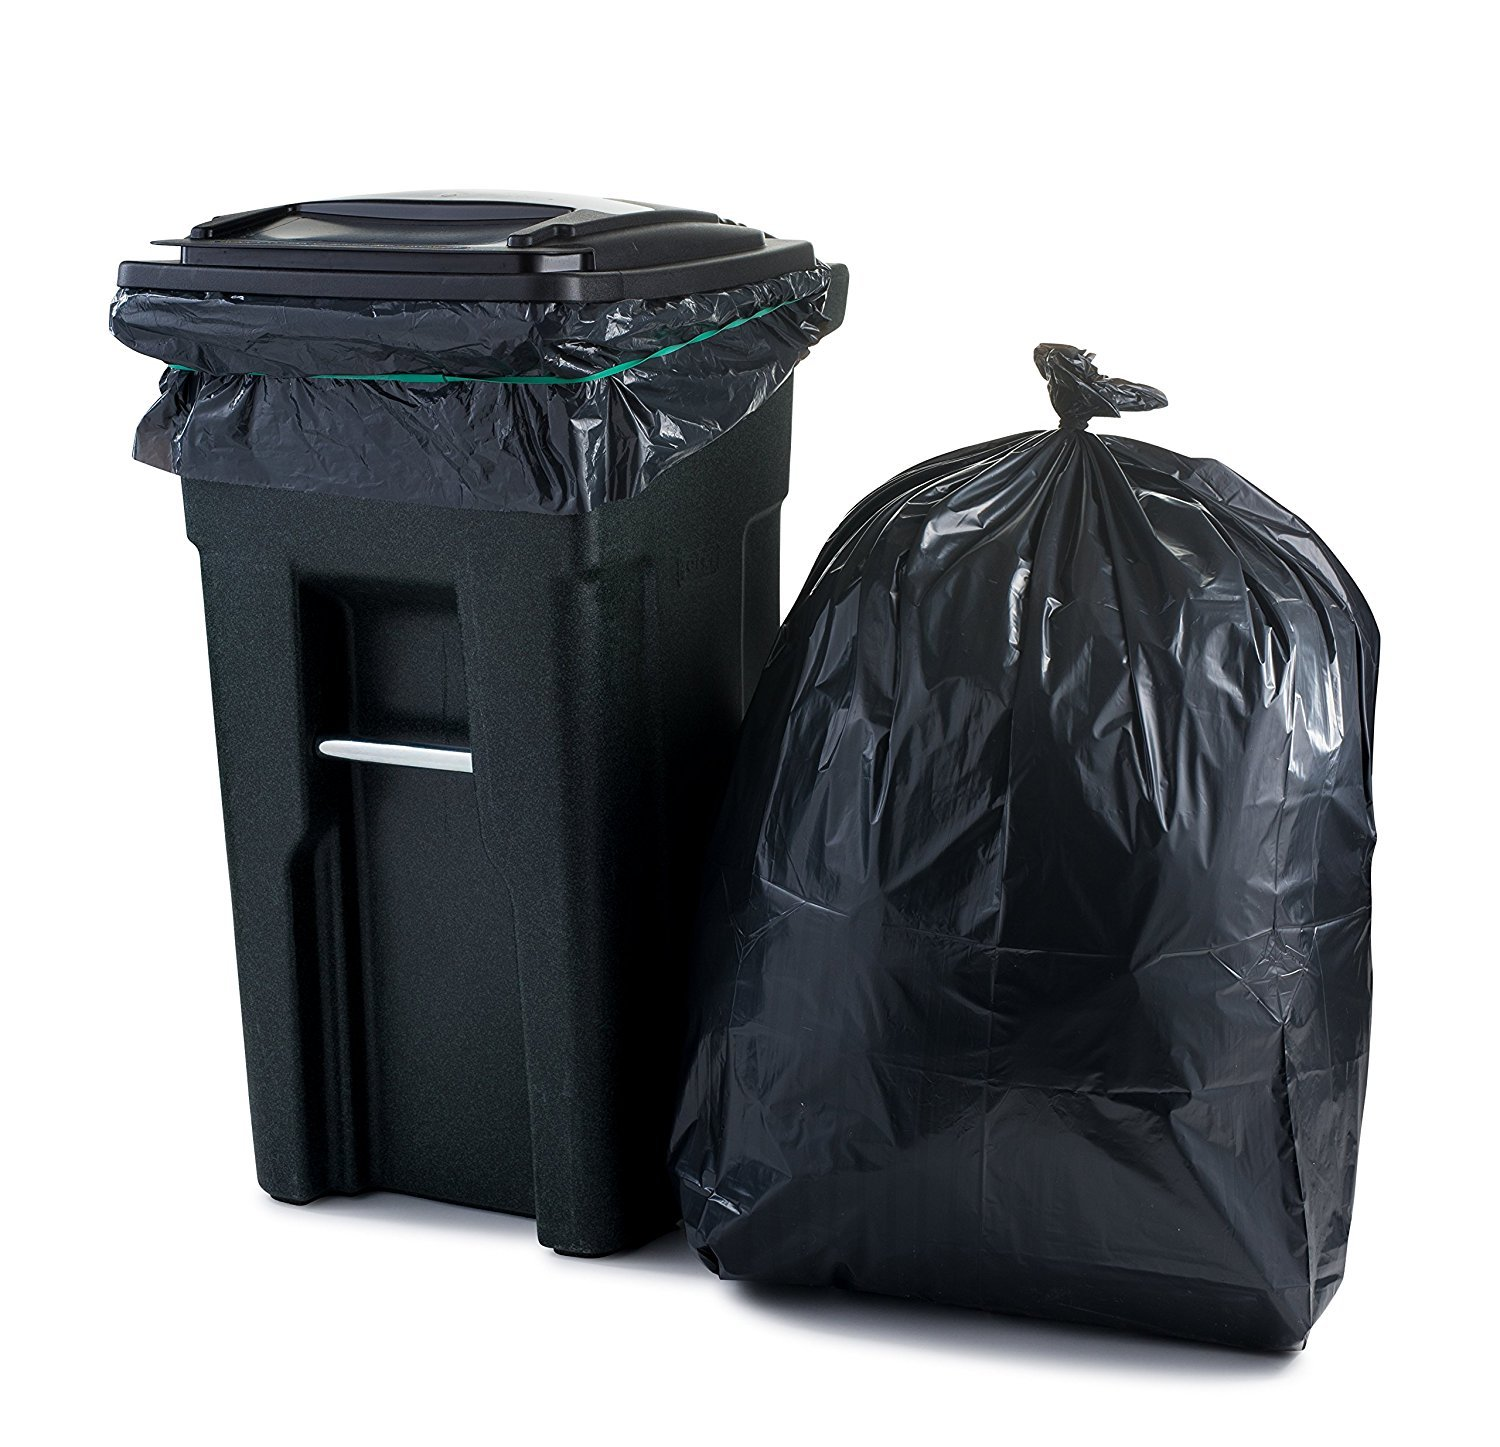 Plasticplace 65 Gallon Trash Bags │ 2.7 Mil │ Black Heavy Duty Garbage Can Liners │ 50'' x 48'' (25 Count) by Plasticplace